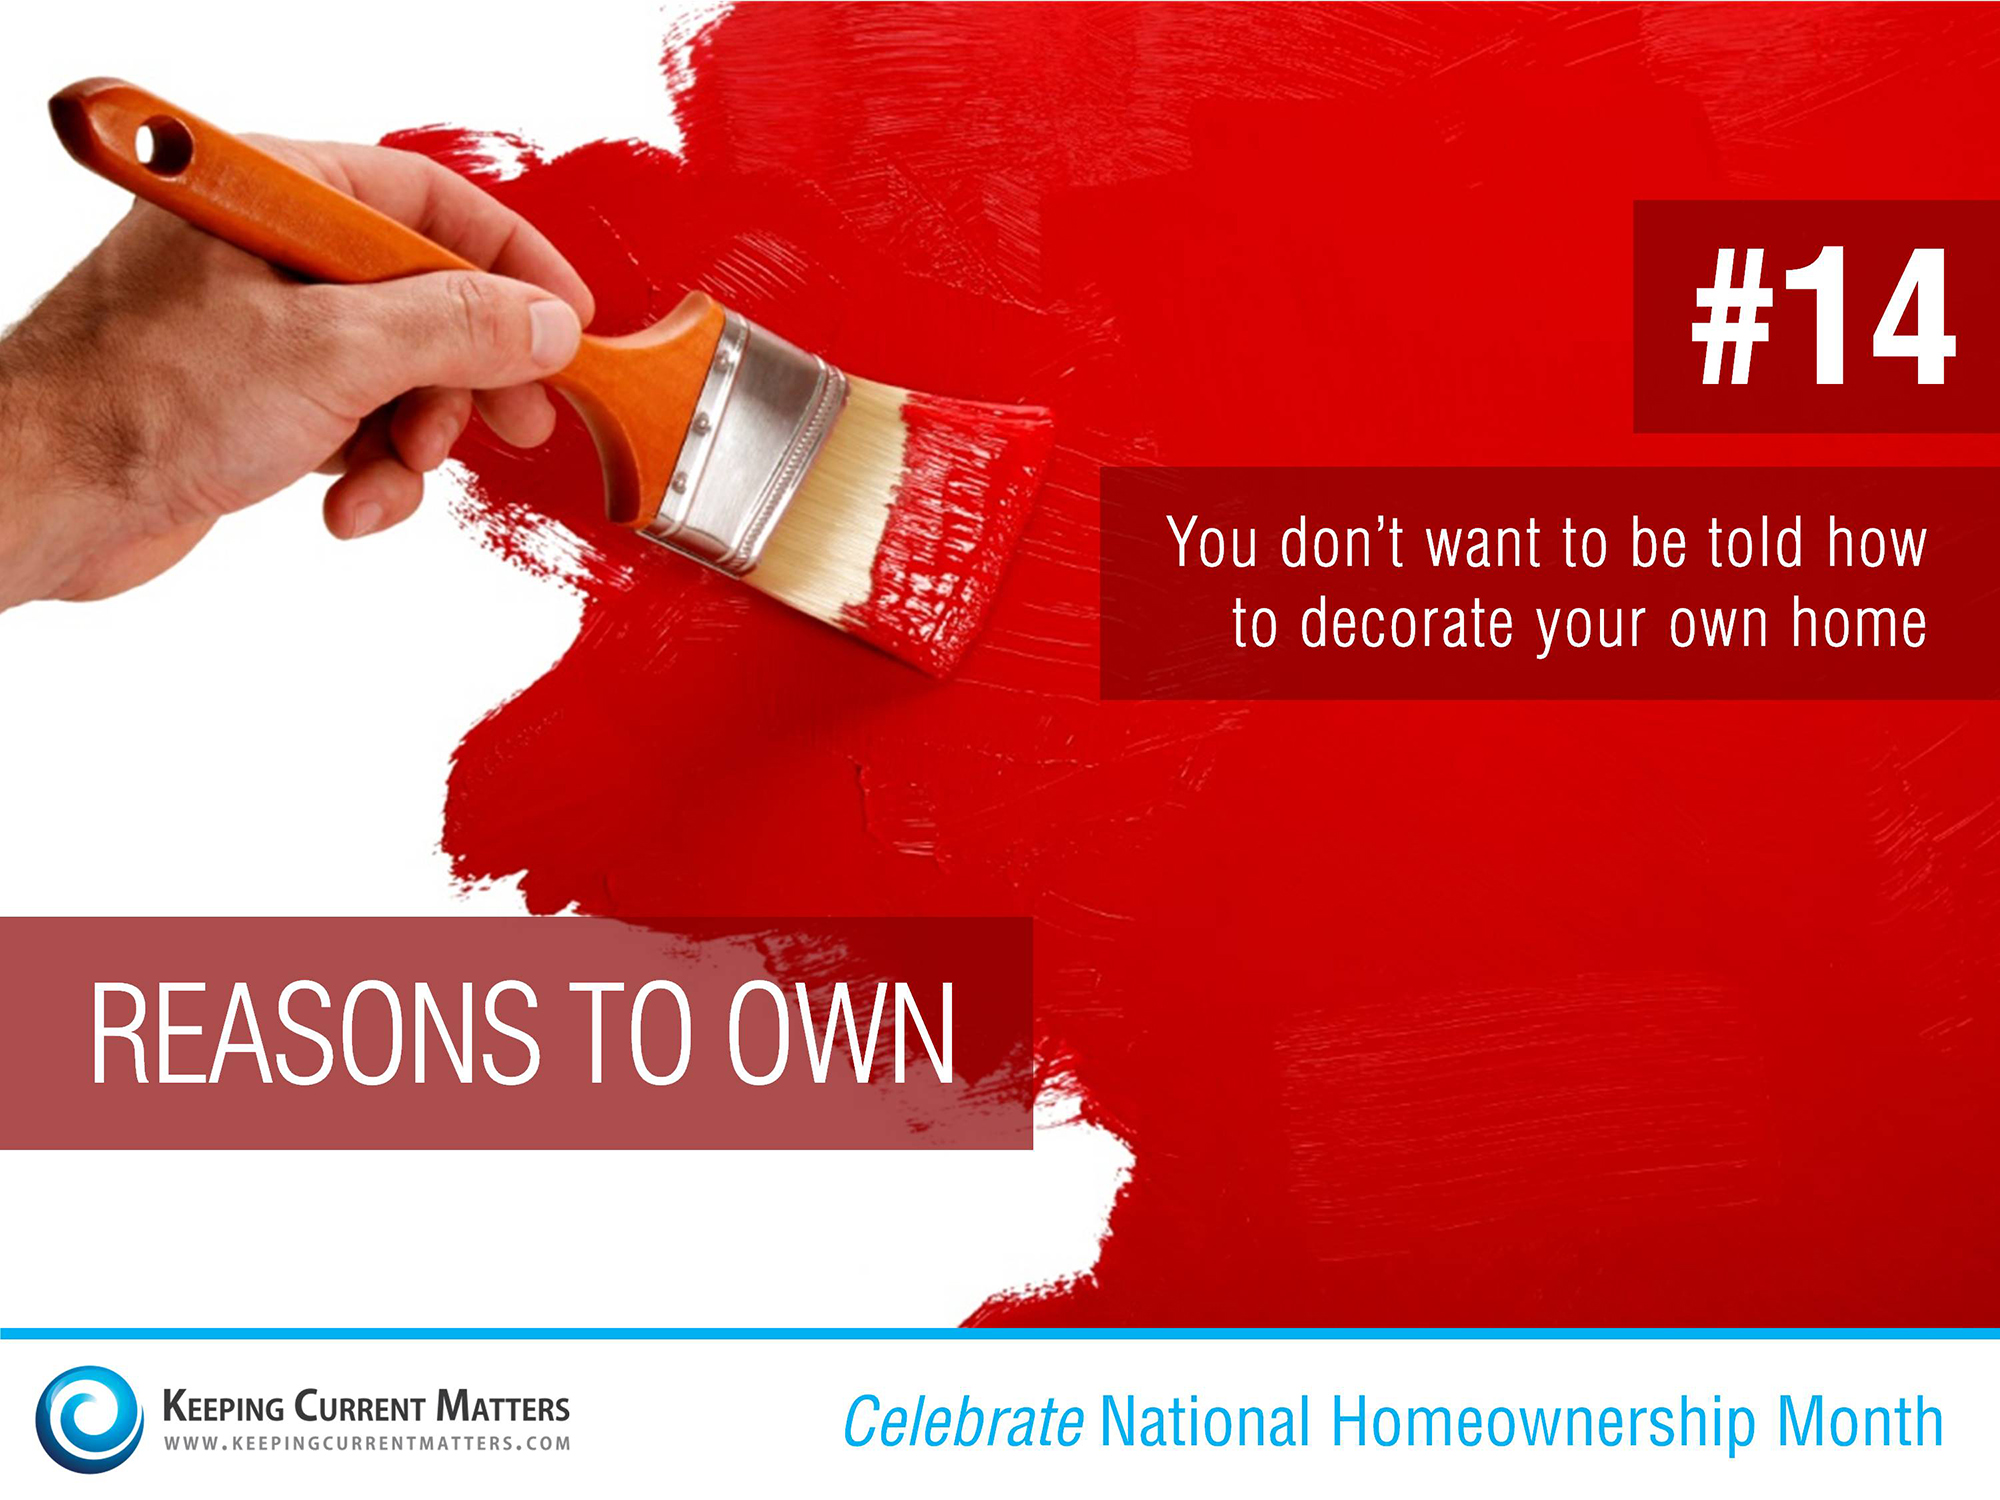 Reason #14 to Own | Keeping Current Matters